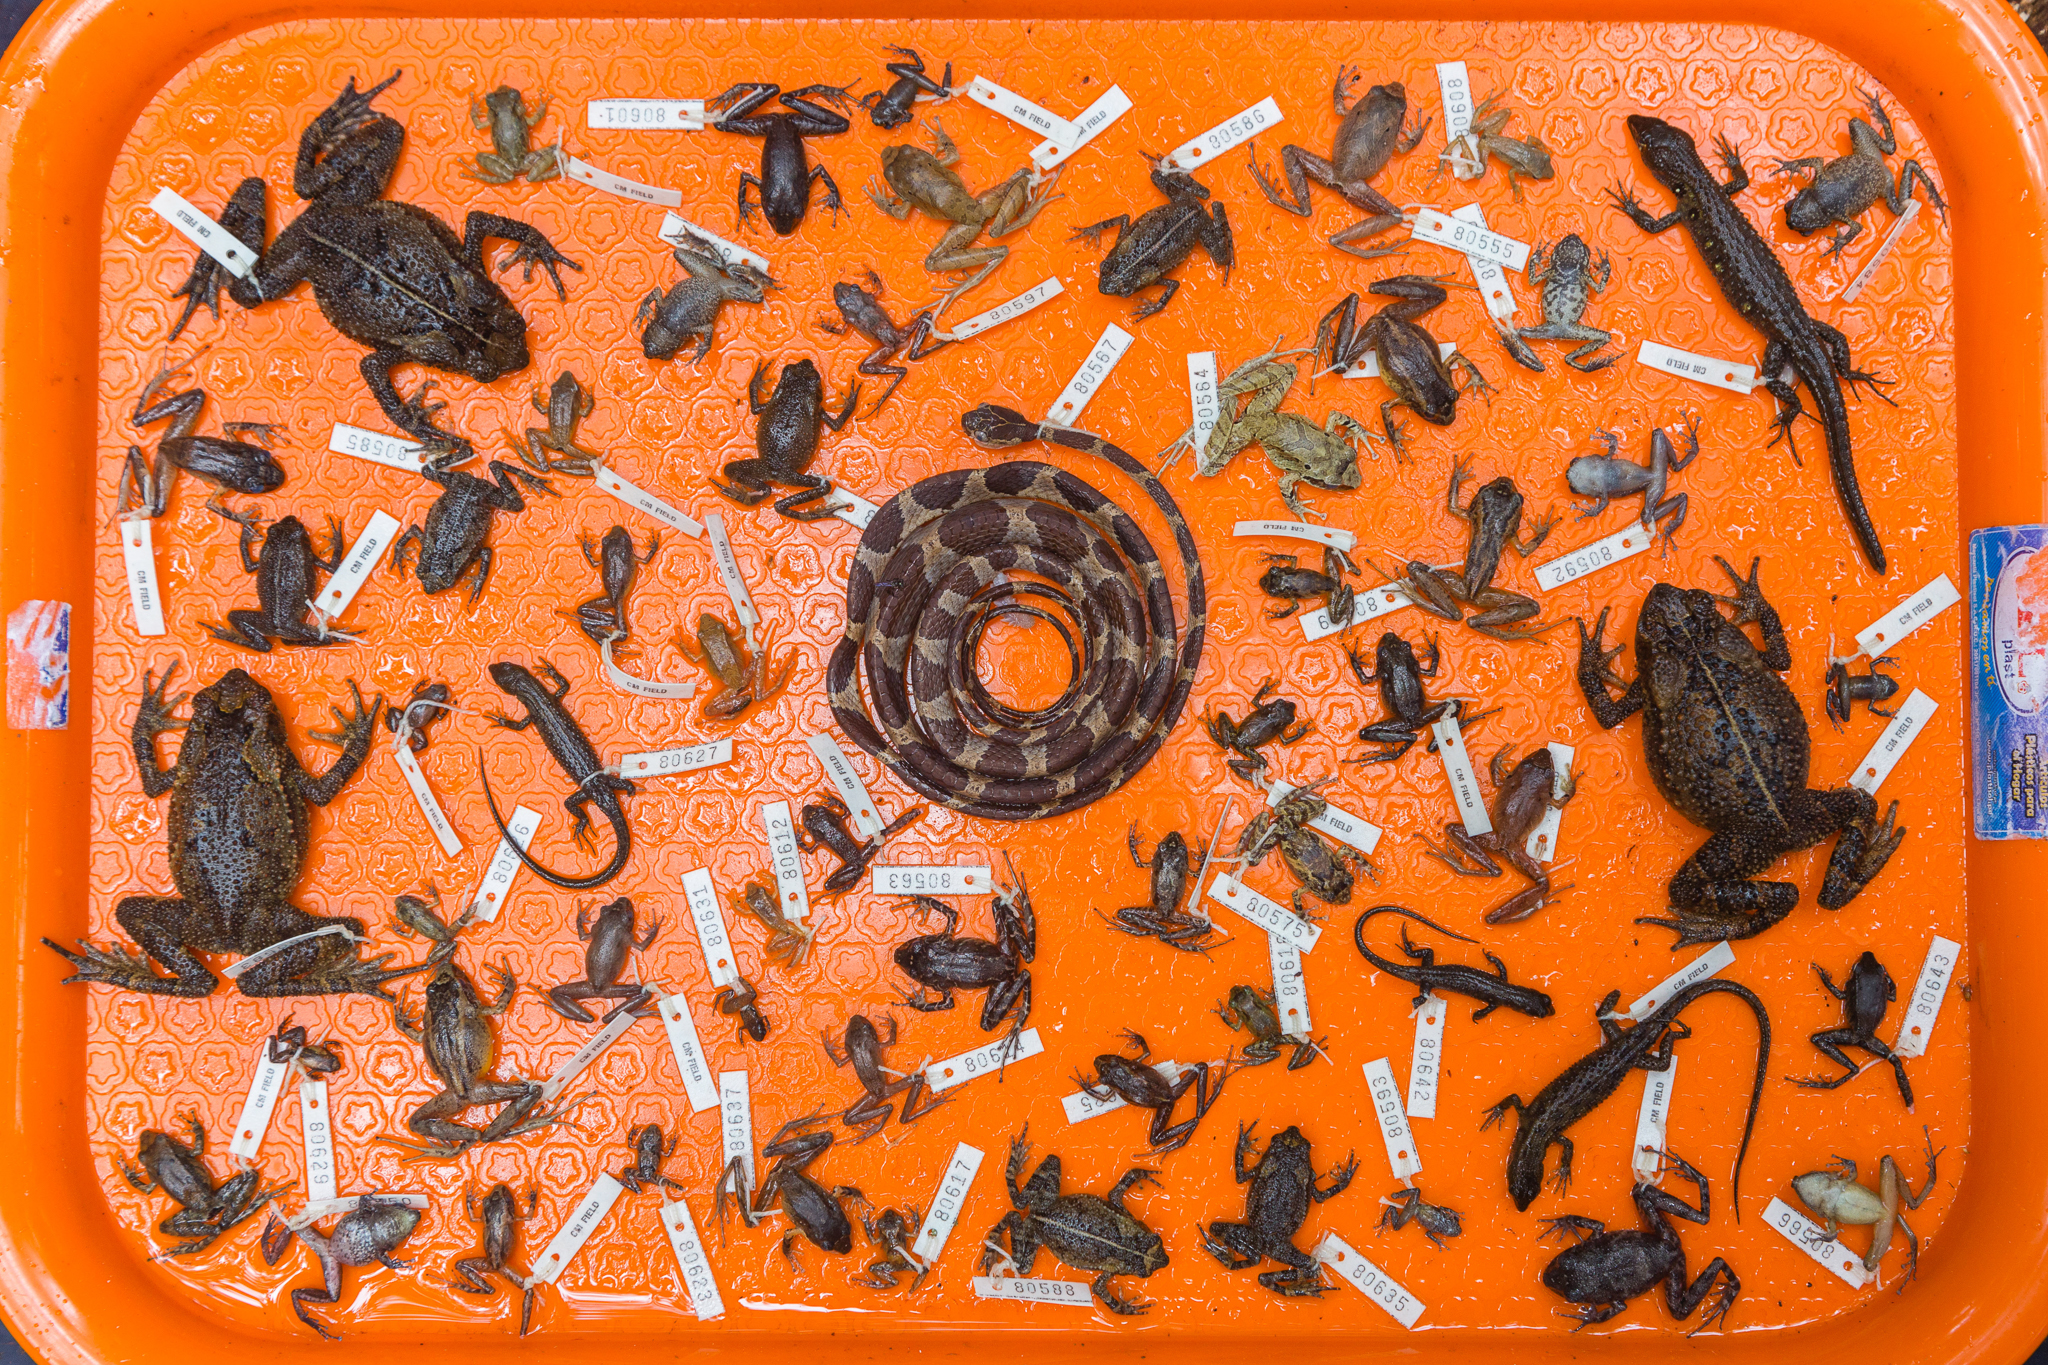 A tray of specimens collected during the expedition. Photo by Andy Isaacson